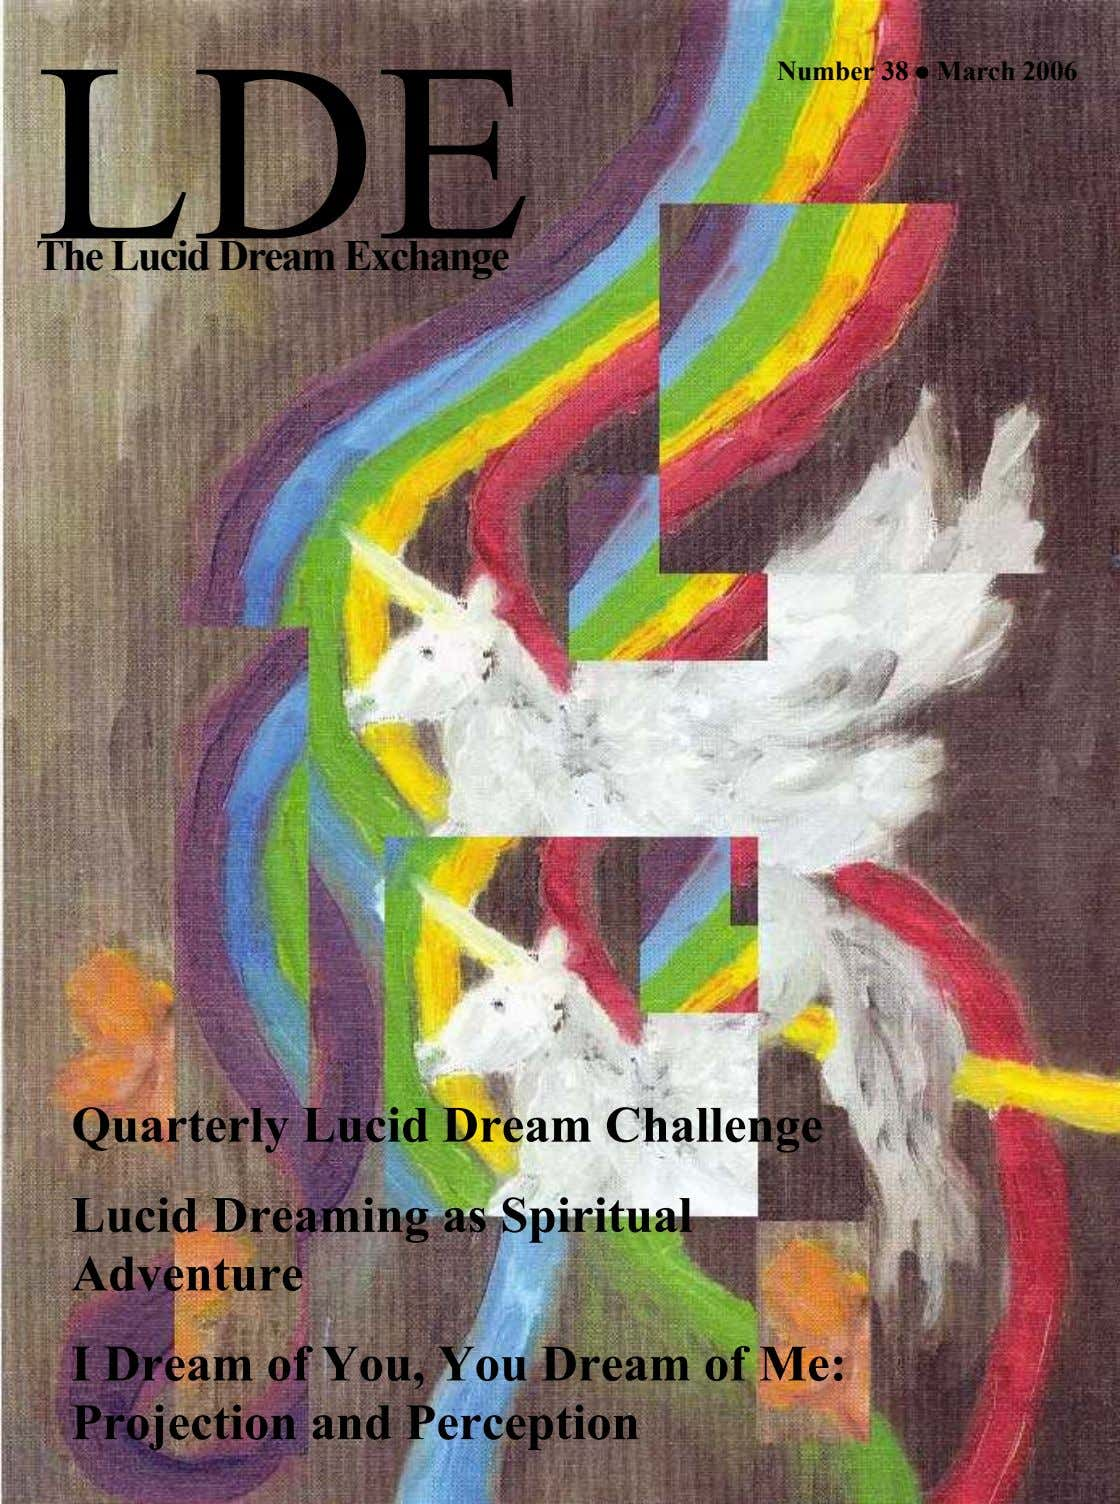 Number 38 March 2006 The Lucid Dream Exchange Quarterly Lucid Dream Challenge Lucid Dreaming as